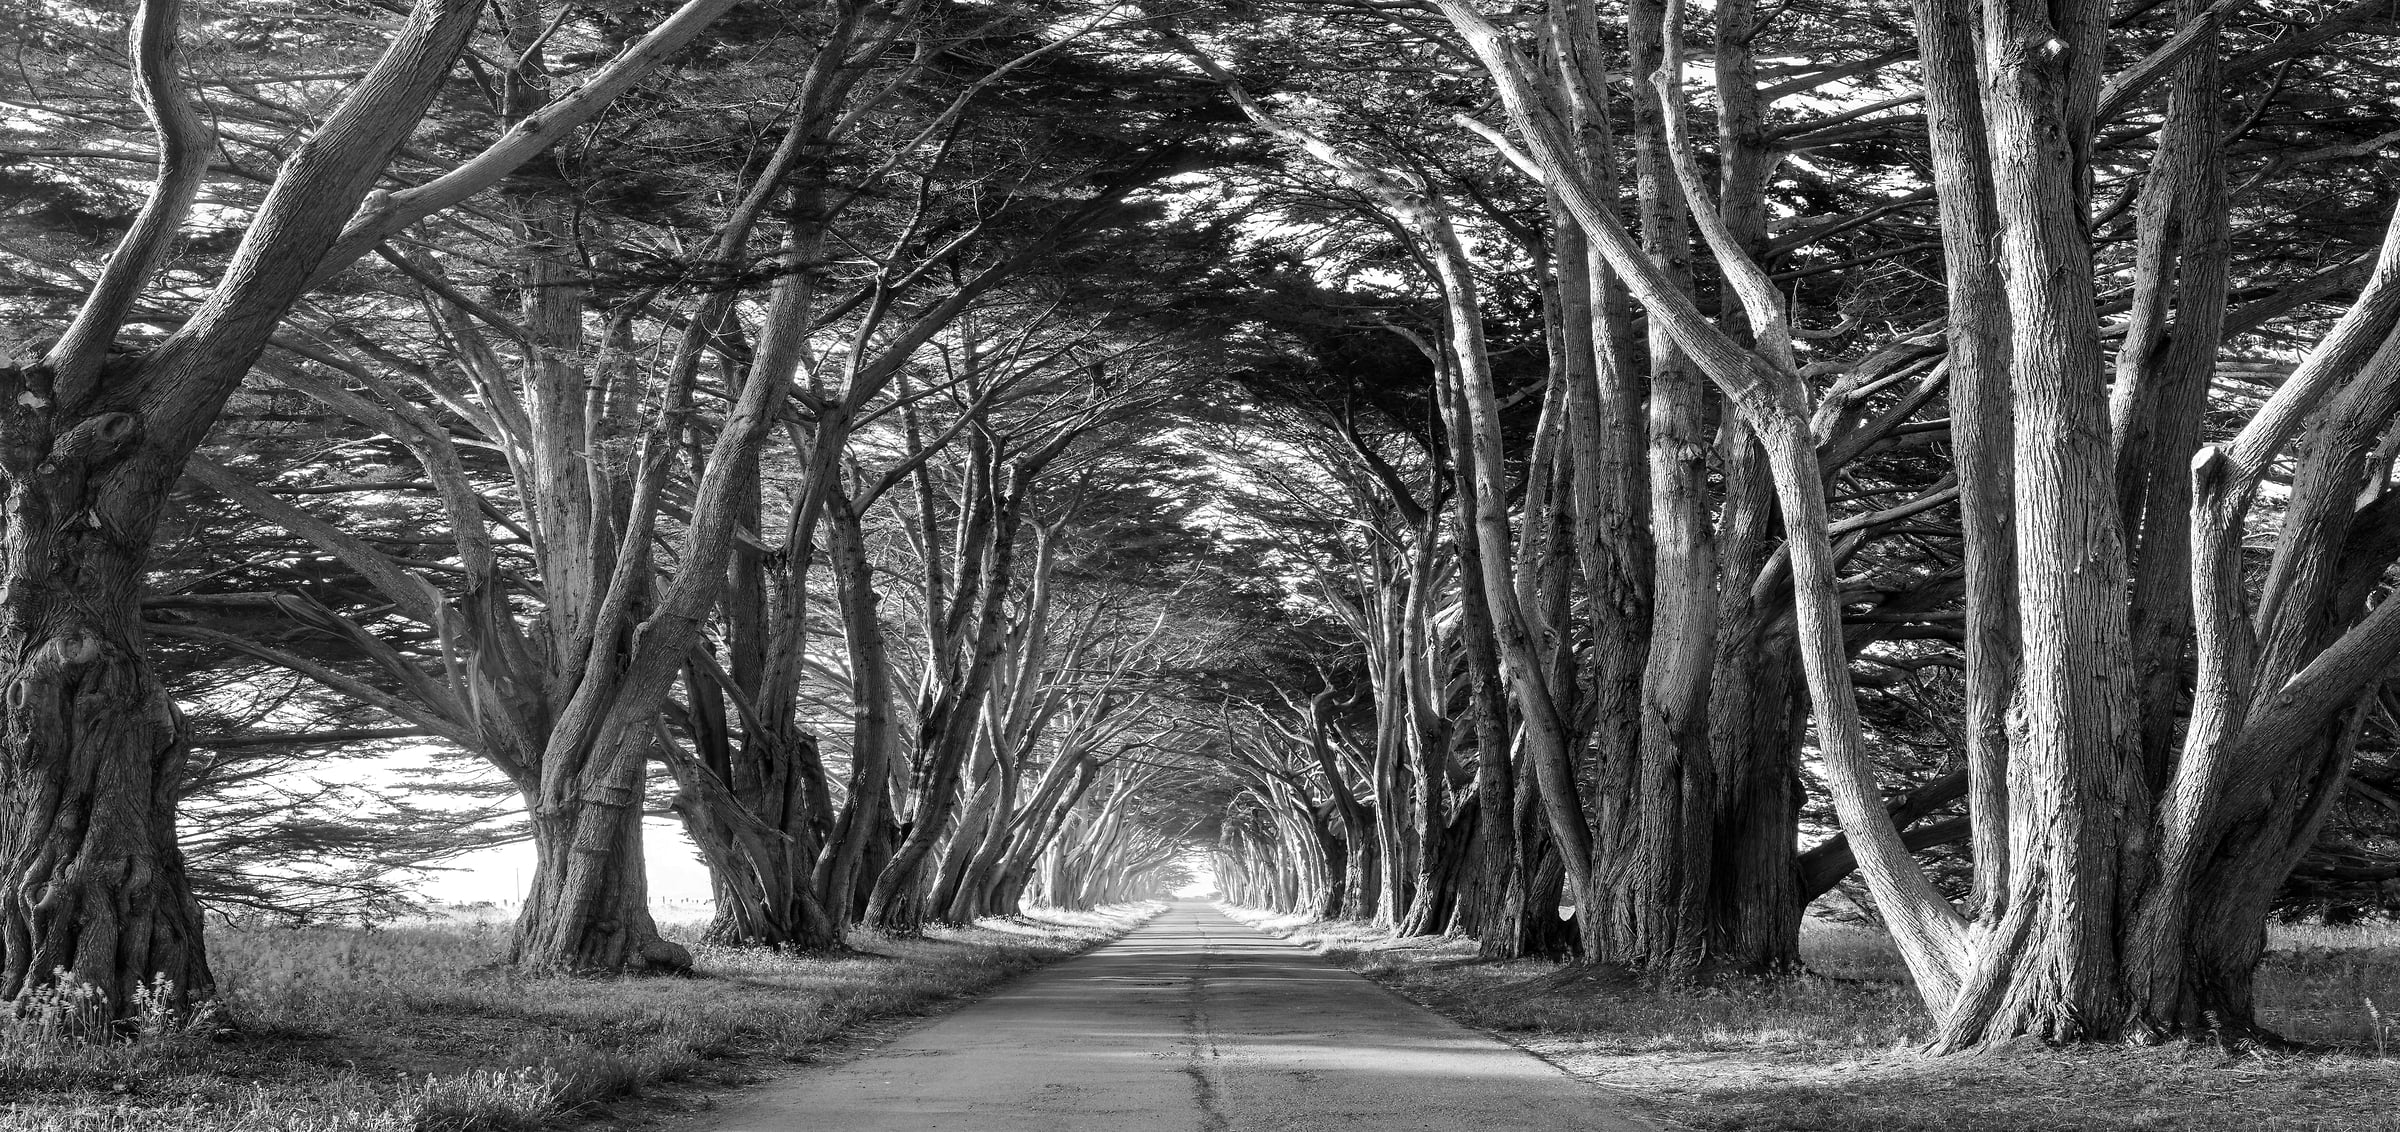 535 megapixels! A very high resolution, large-format, black & white, VAST photo of a tunnel of cypress trees with a road going down the middle; fine art nature photograph created by Justin Katz in Point Reyes National Seashore, California